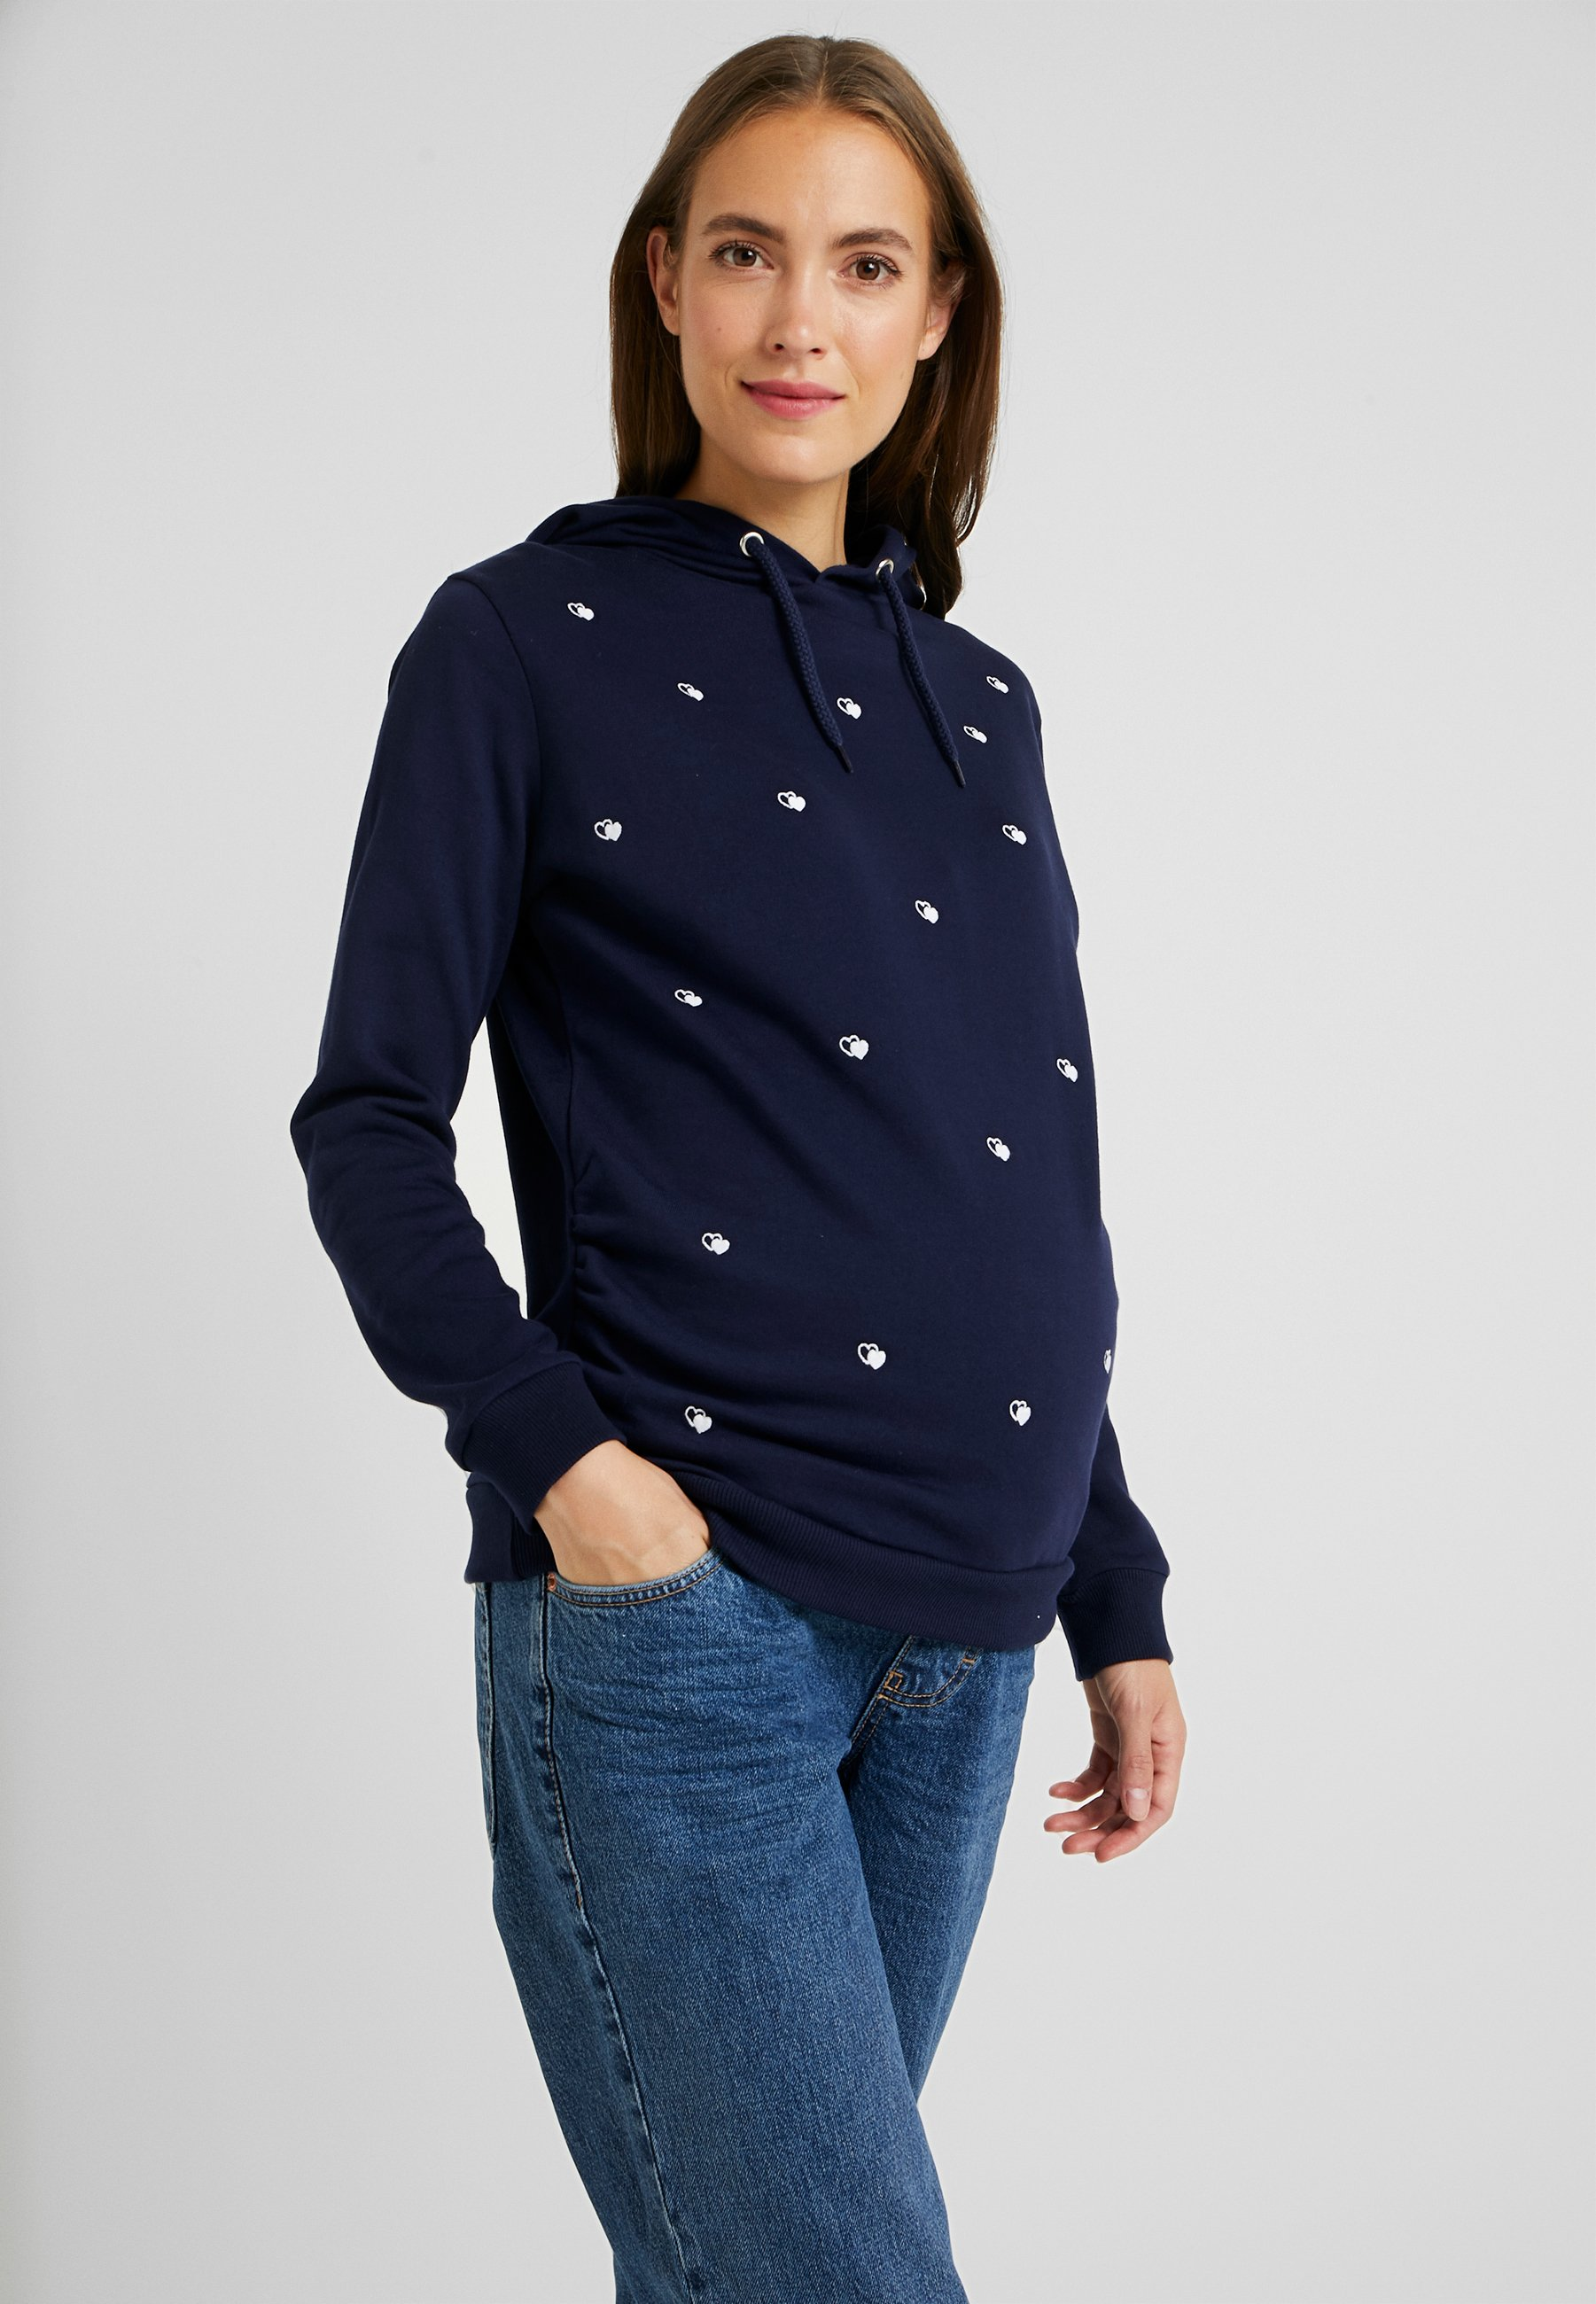 Perkins À Heart Capuche Dorothy Embroidered Navy Maternity HoodieSweat UzMpGVqS